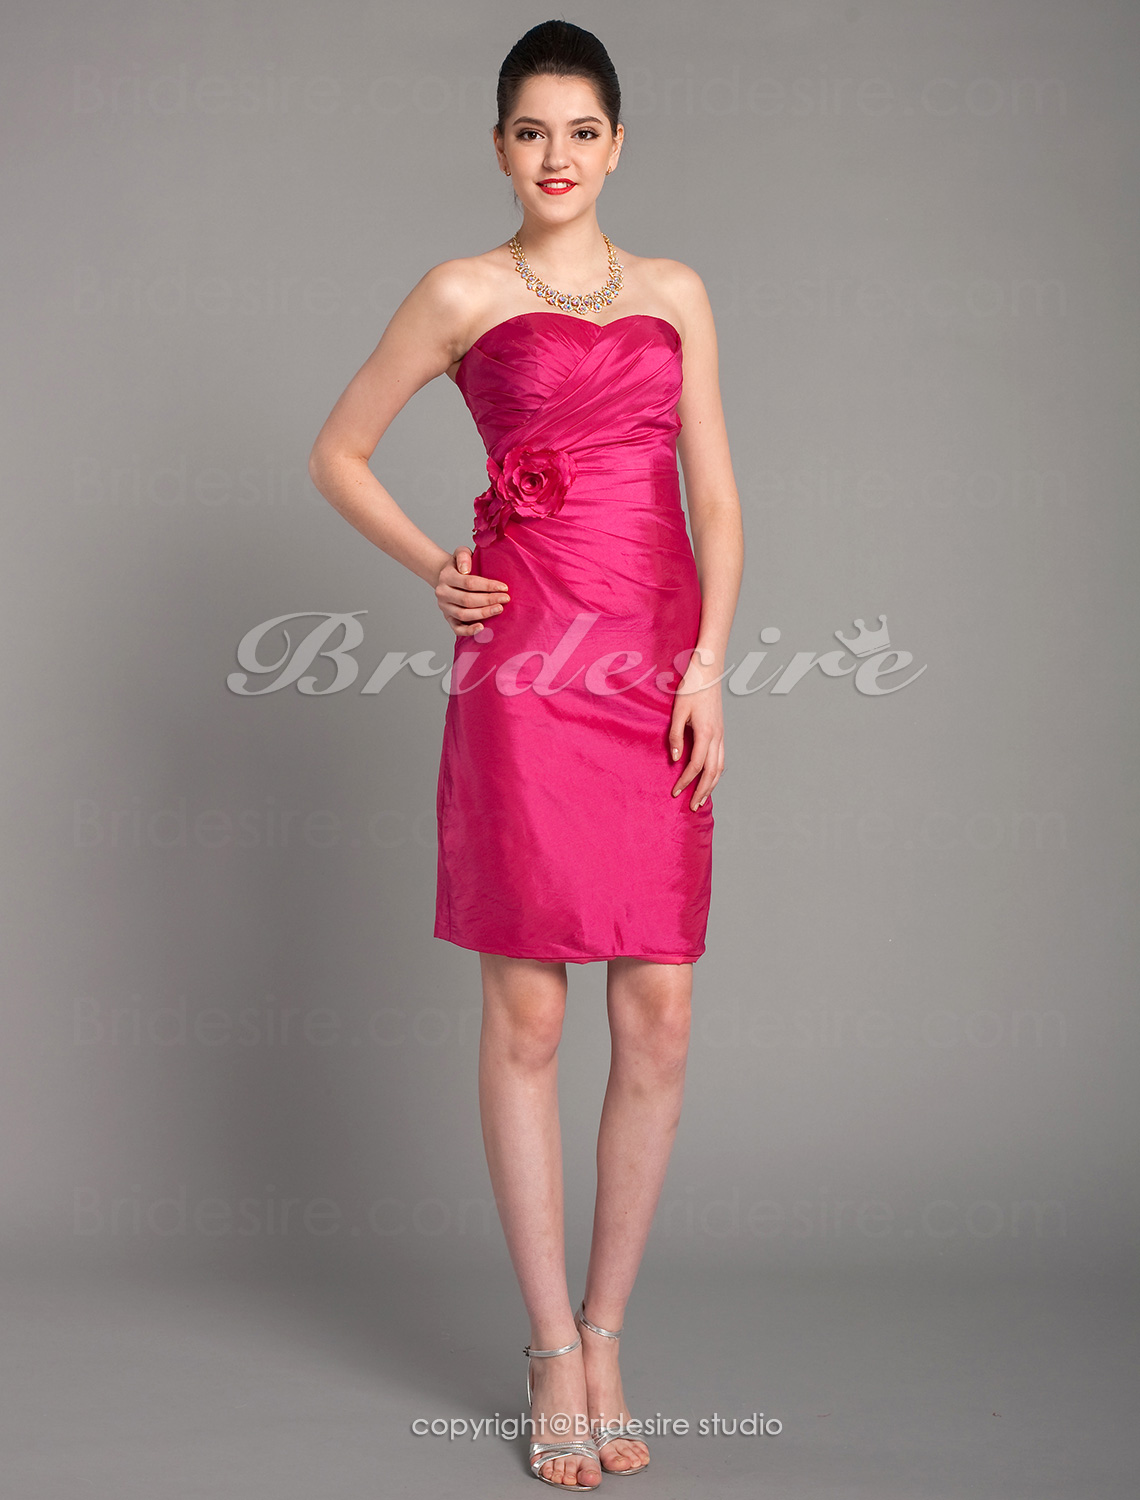 Sheath/Column Satin Short/Mini Sweetheart Bridesmaid Dress